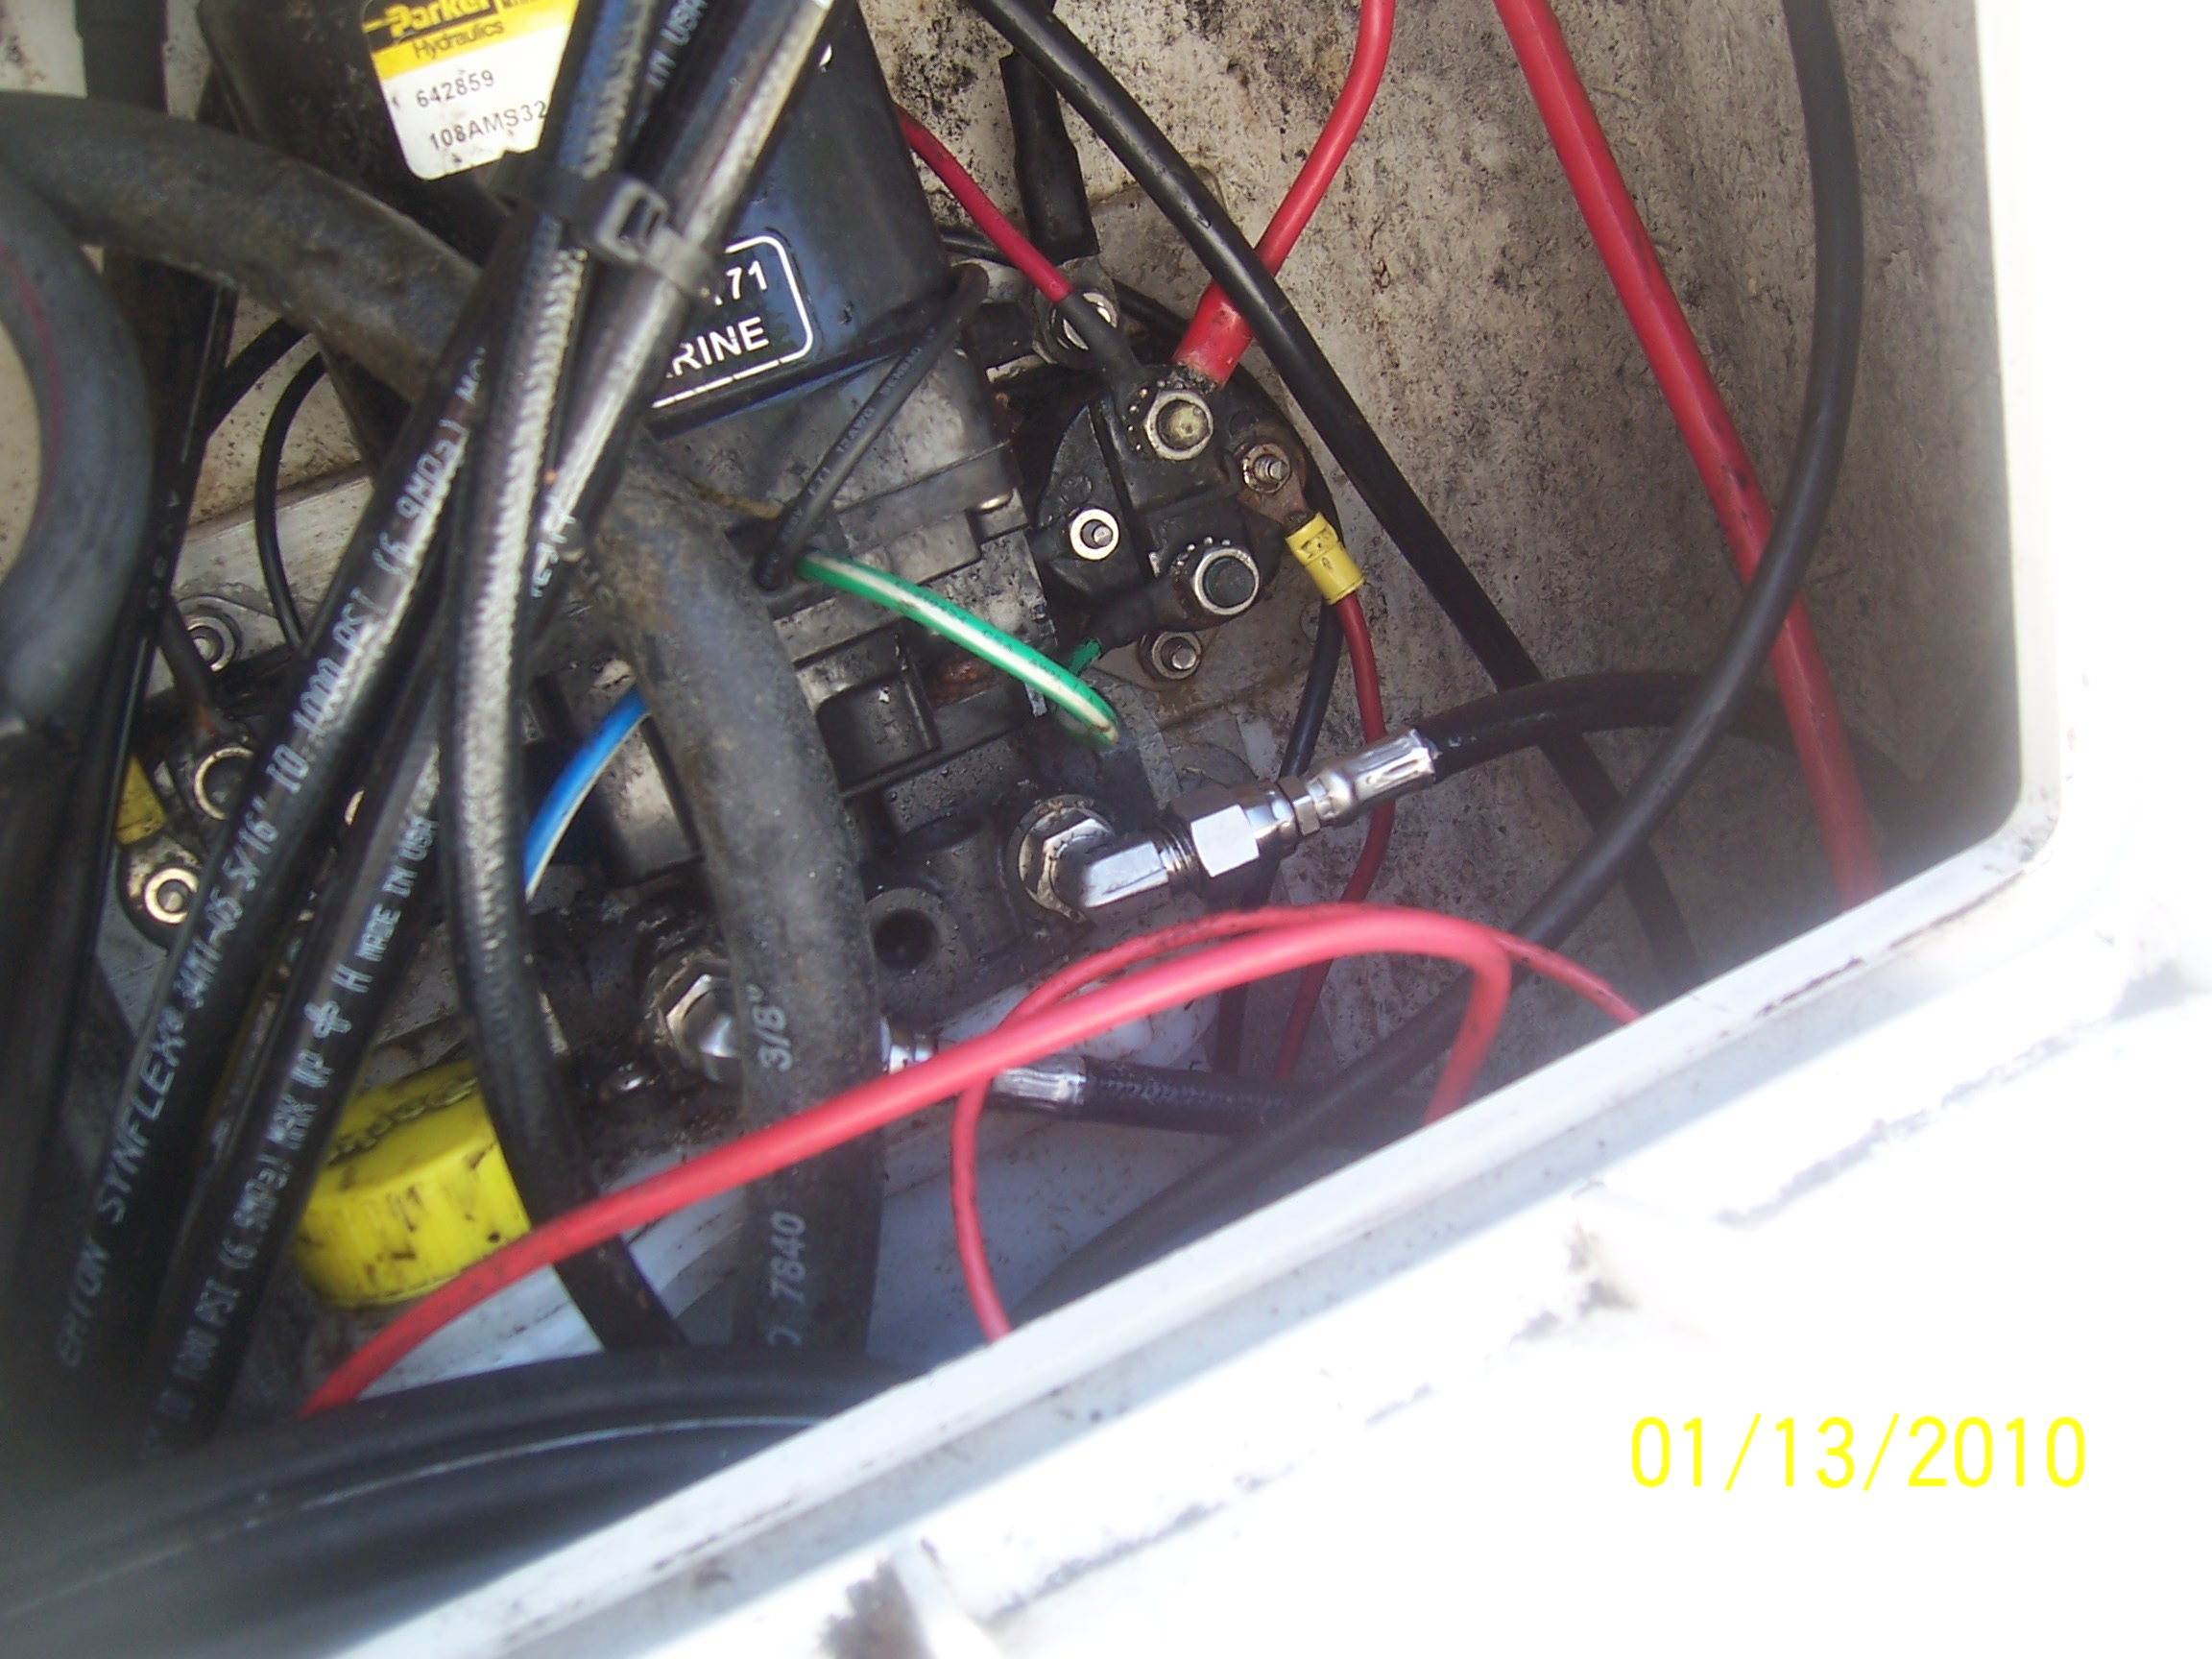 2010 04 22_180350_012 i have a df 175 suzuki 4 stroke 2008 the other day we were out 2007 suzuki df 175 wiring diagram at nearapp.co